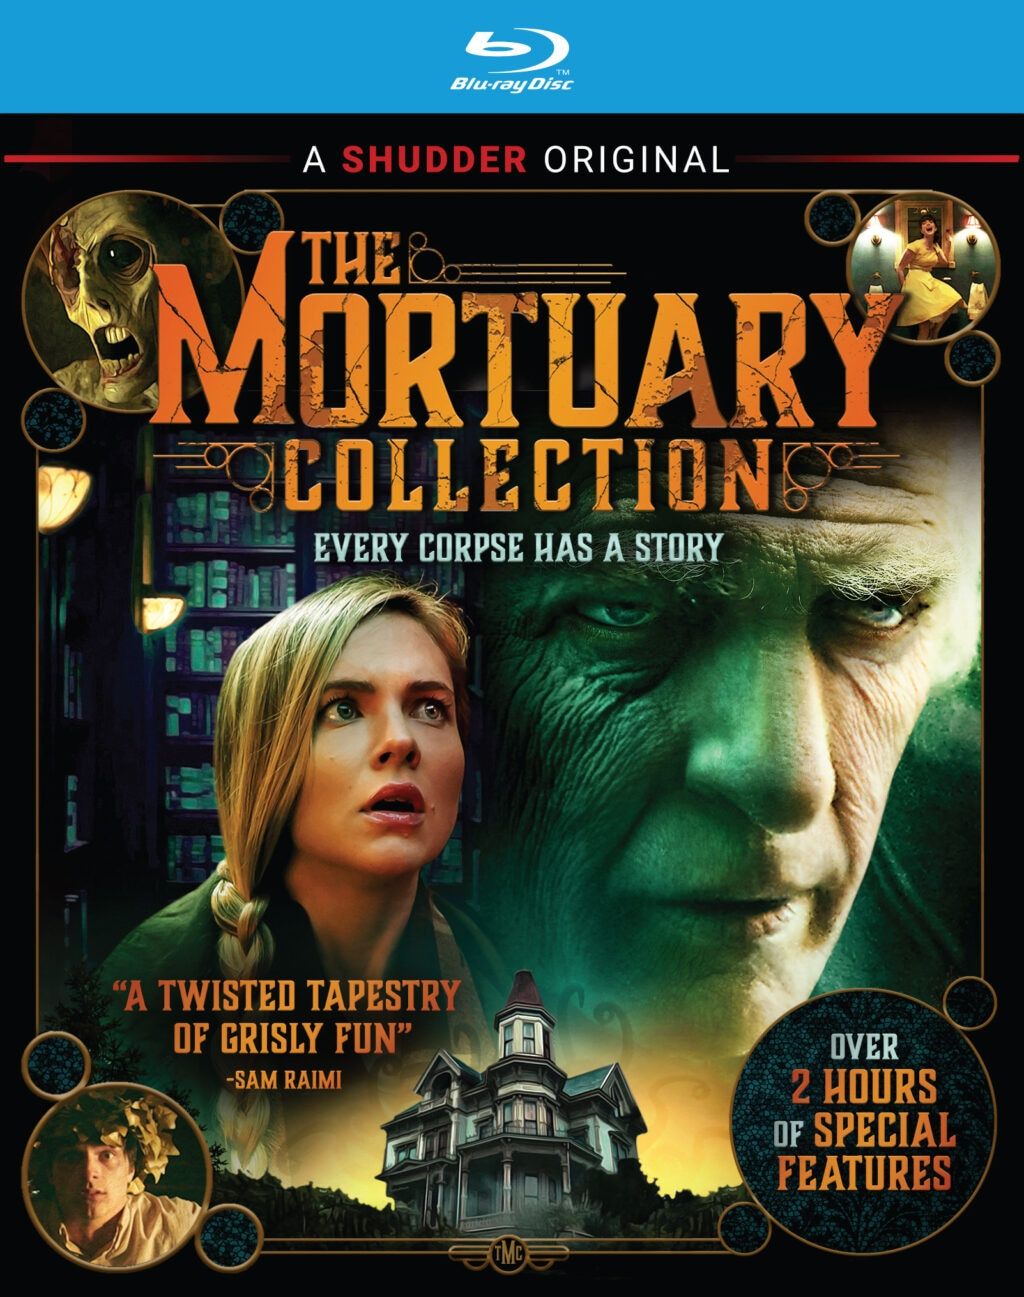 MortuaryCollection BD HIC 1024x1297 - Own 2020's Hit Horror Anthology THE MORTUARY COLLECTION on April 20th